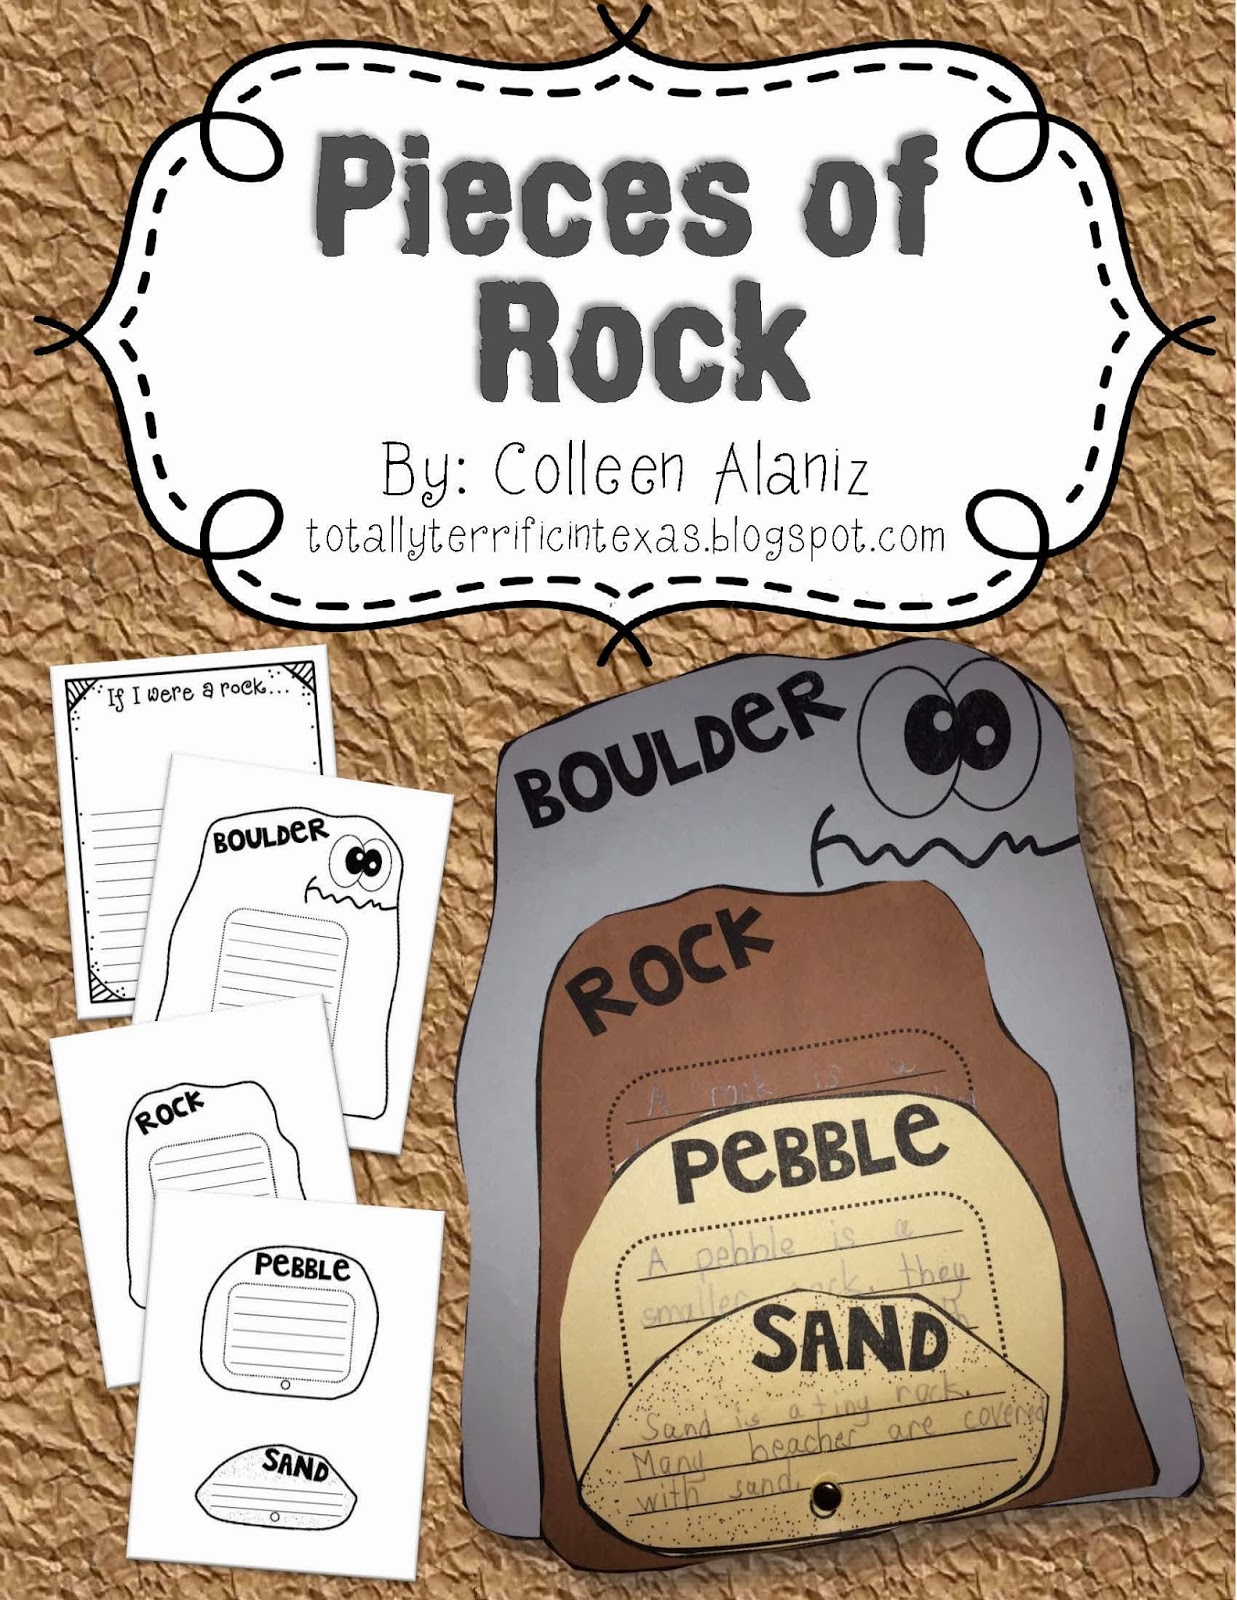 http://www.teacherspayteachers.com/Product/Pieces-of-Rock-1105343